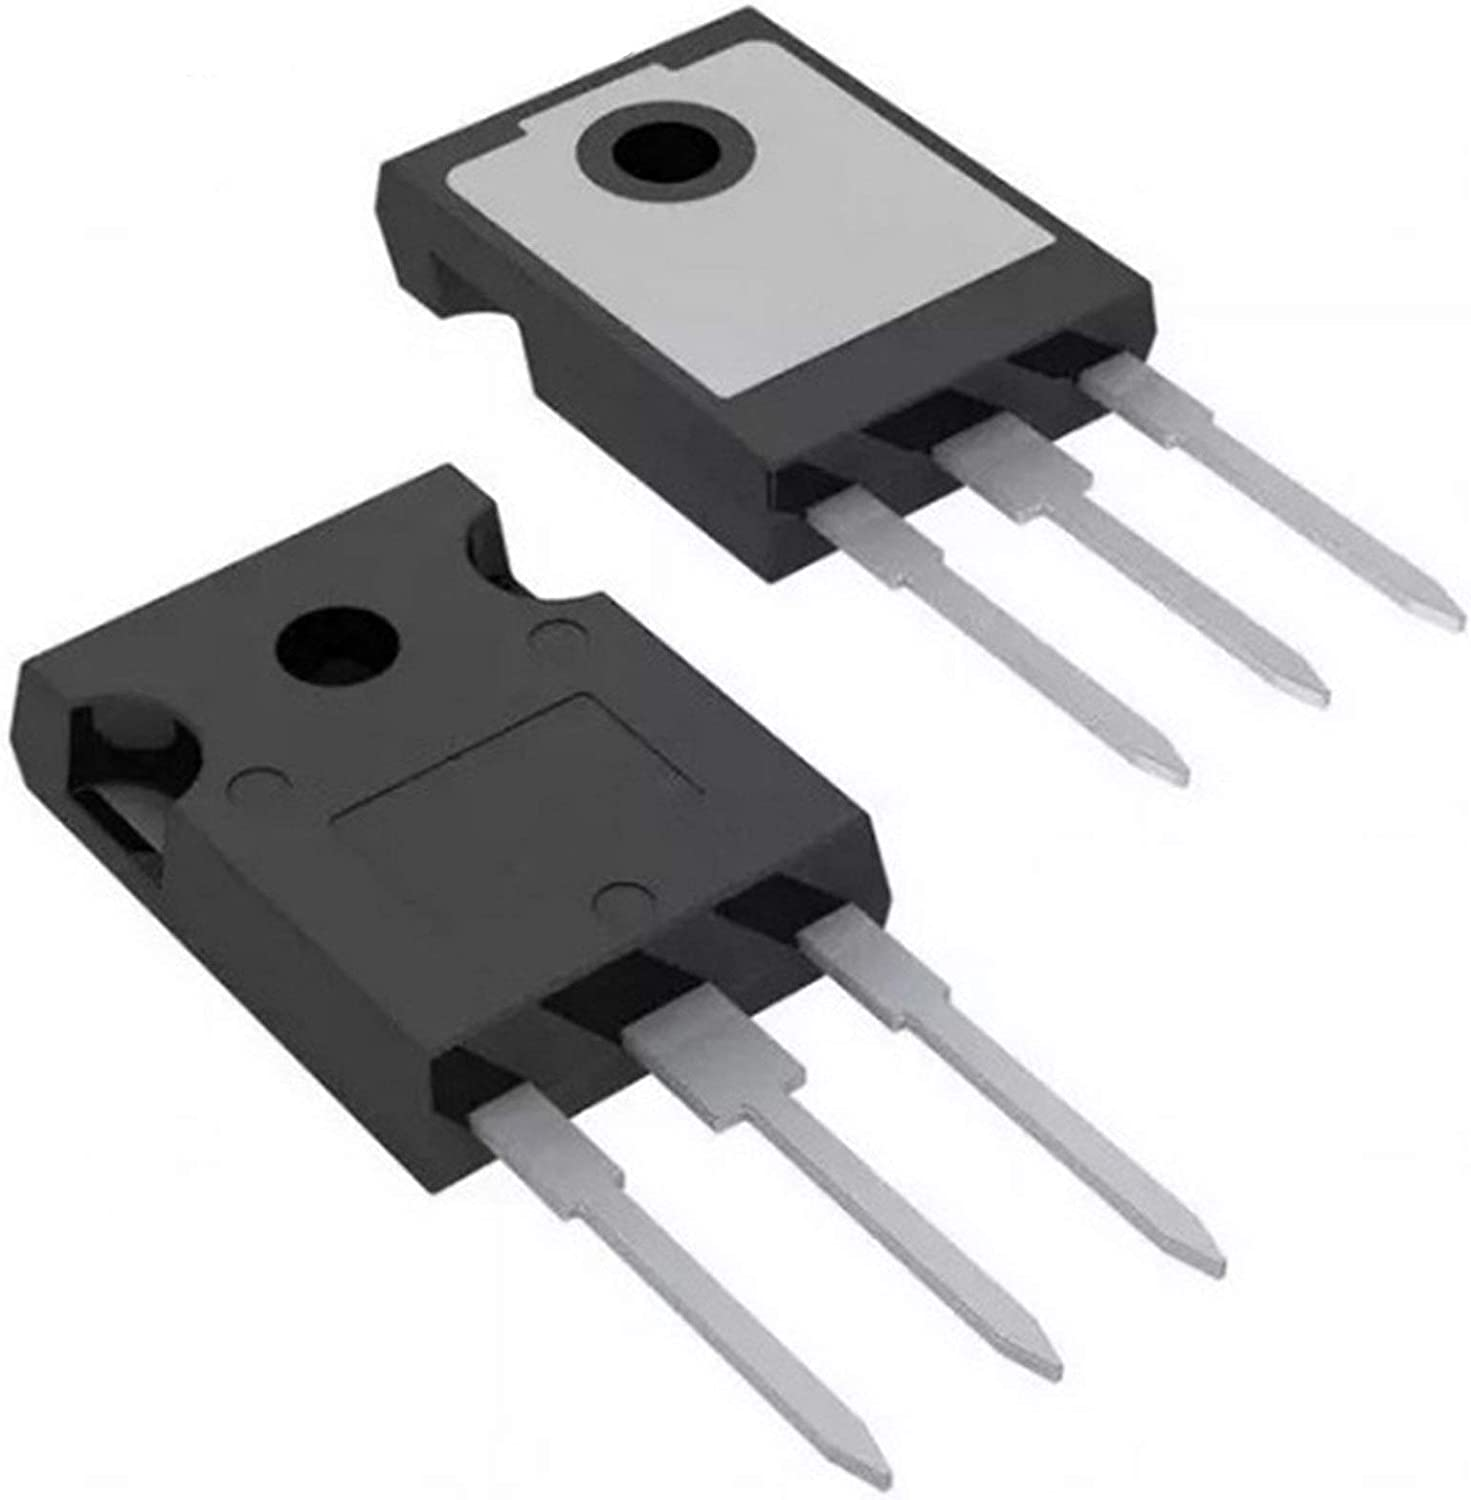 BAIJIAXIUSHANG-TIES Electrical Chicago Mall Triode Limited time cheap sale Transistor 10PCS IRFP4468